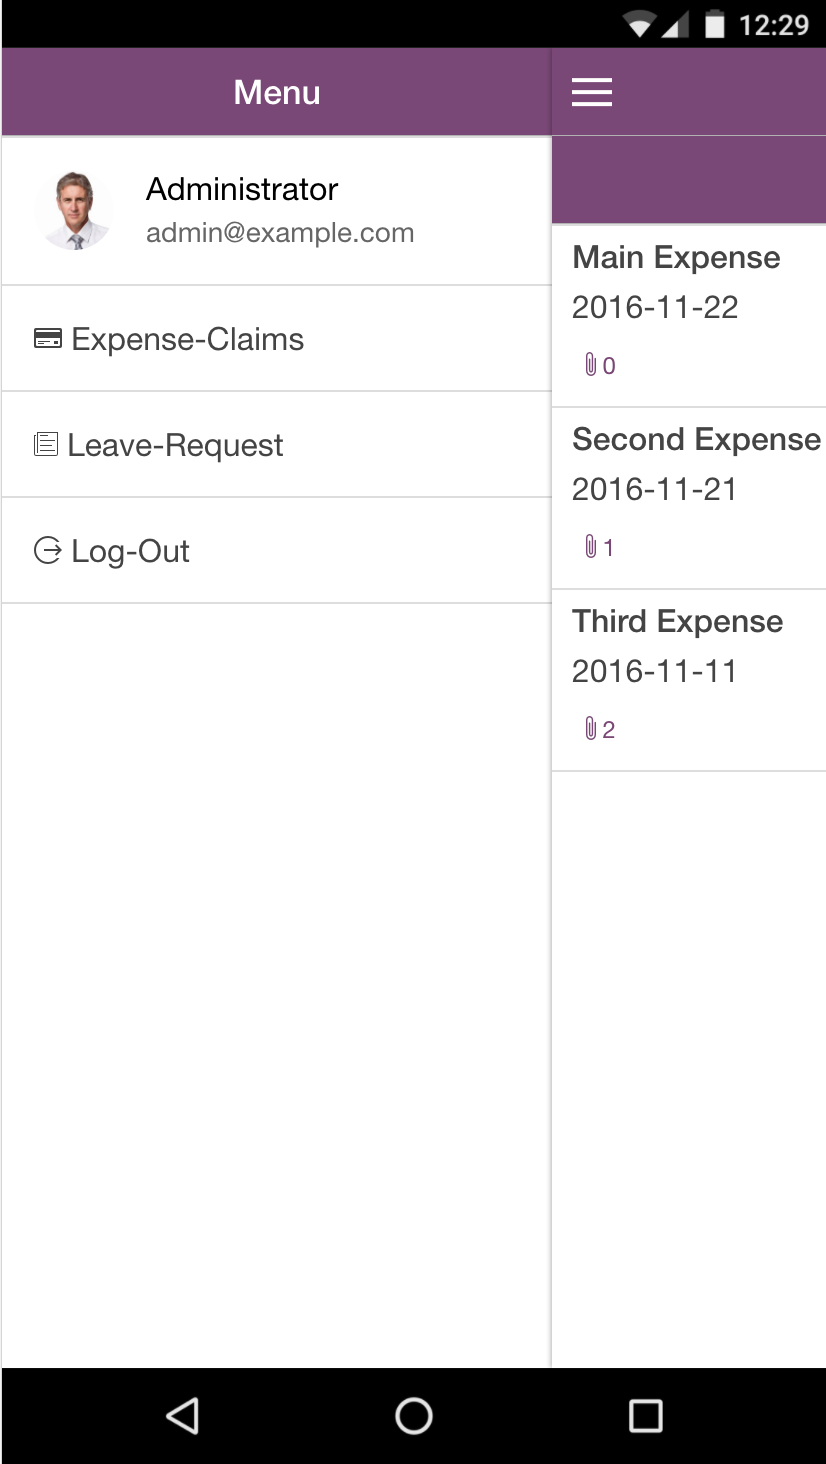 Expense claims